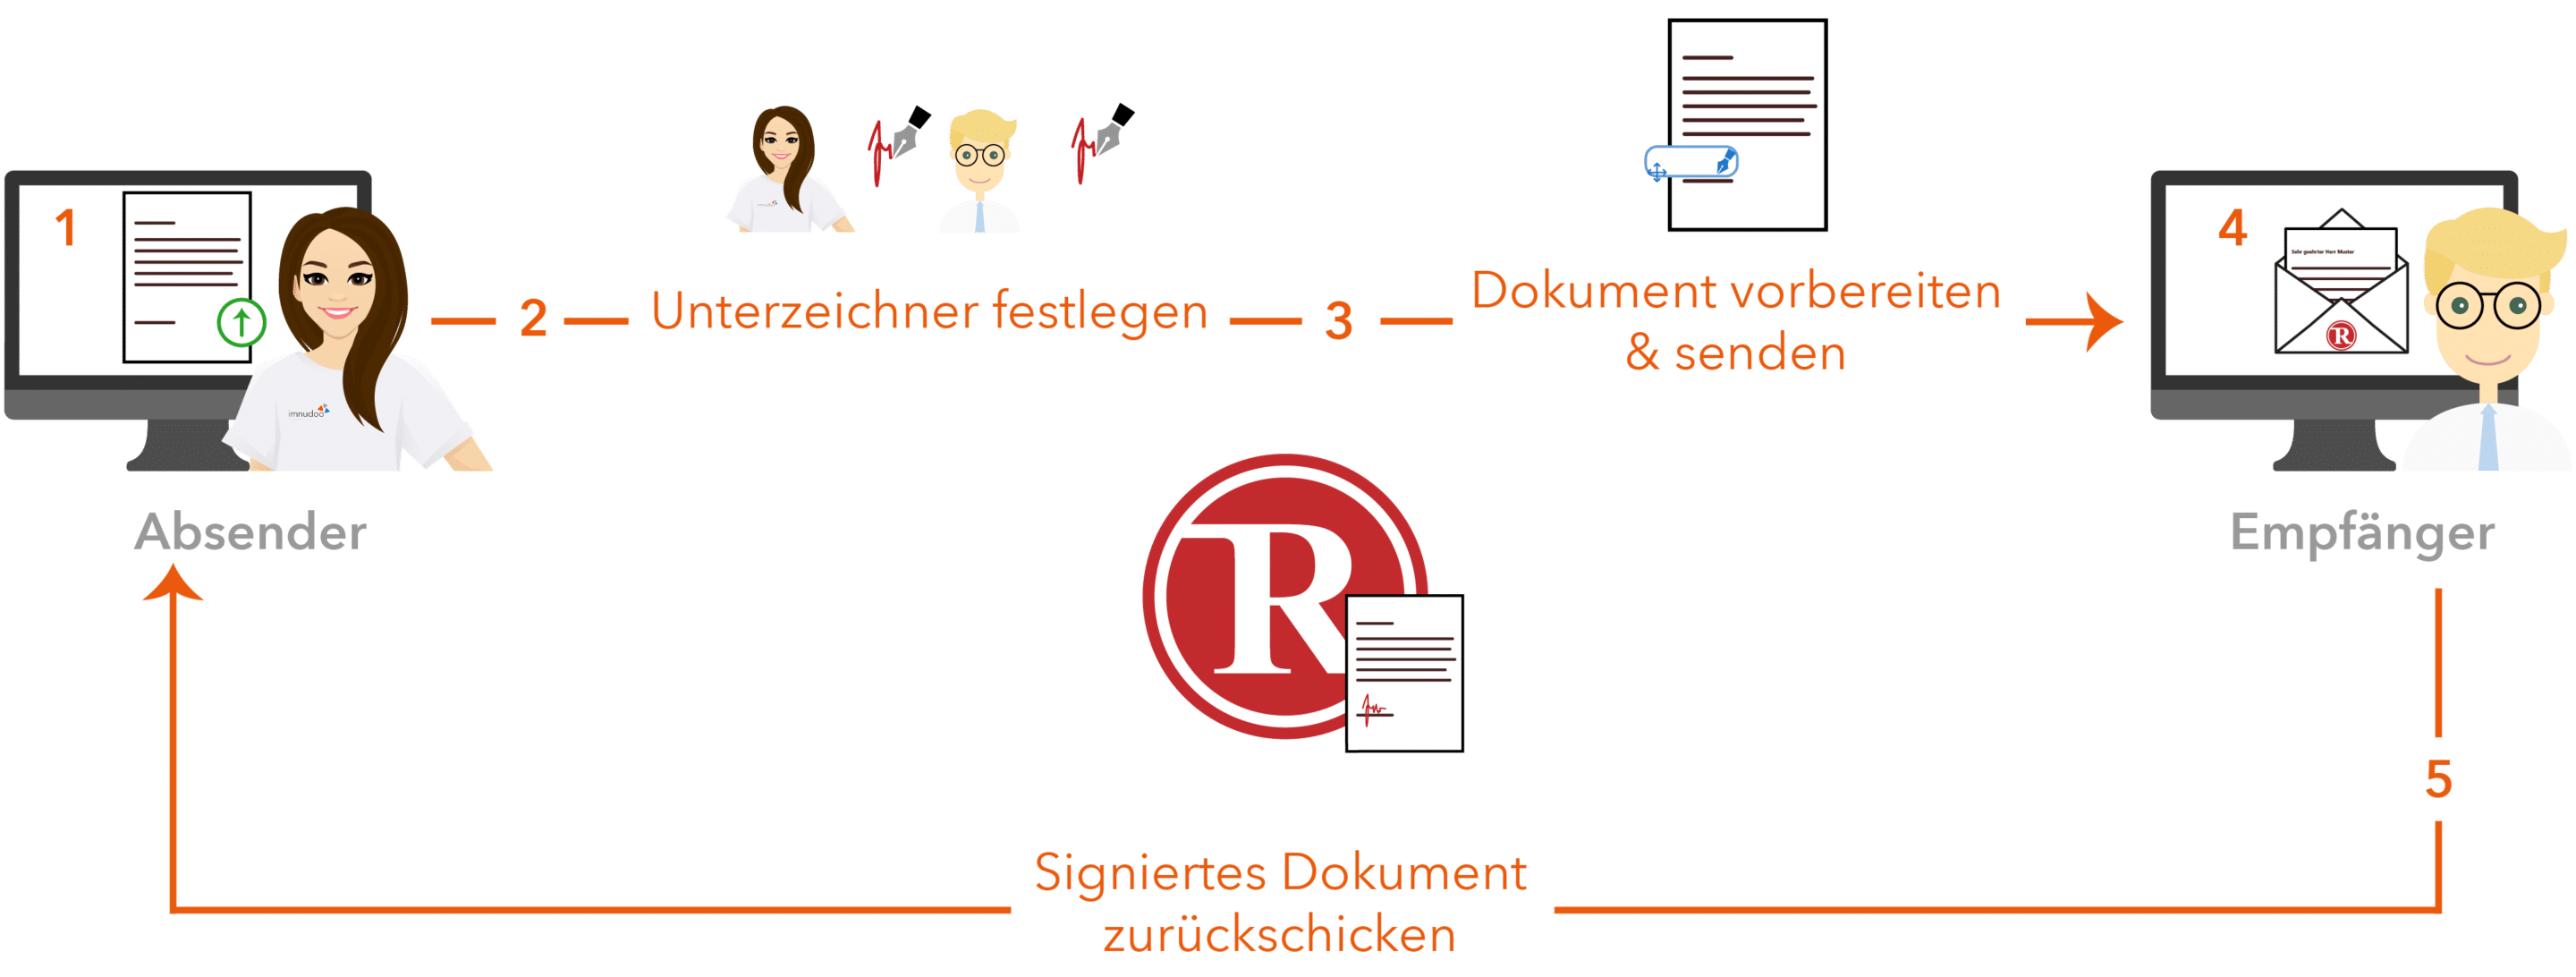 RSign Workflow